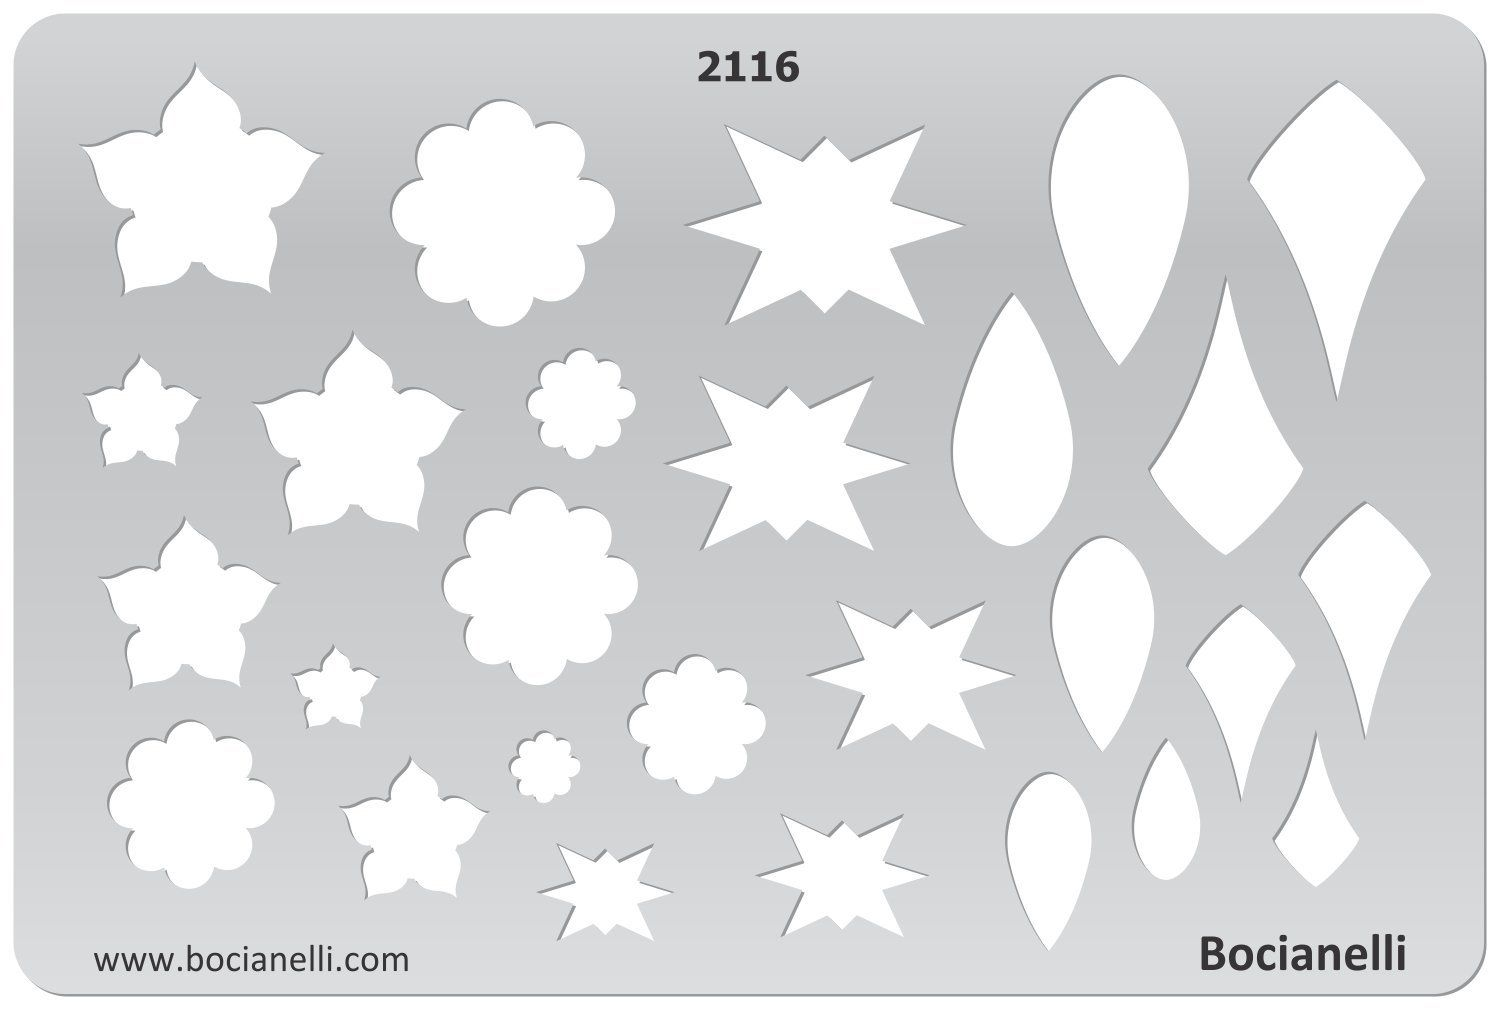 Amazon.com - Plastic Stencil Template for Graphical Design Drawing Drafting Metal Clay Jewellery Jewelry Making - Stars Tear Drops - Jewelry Making Tools